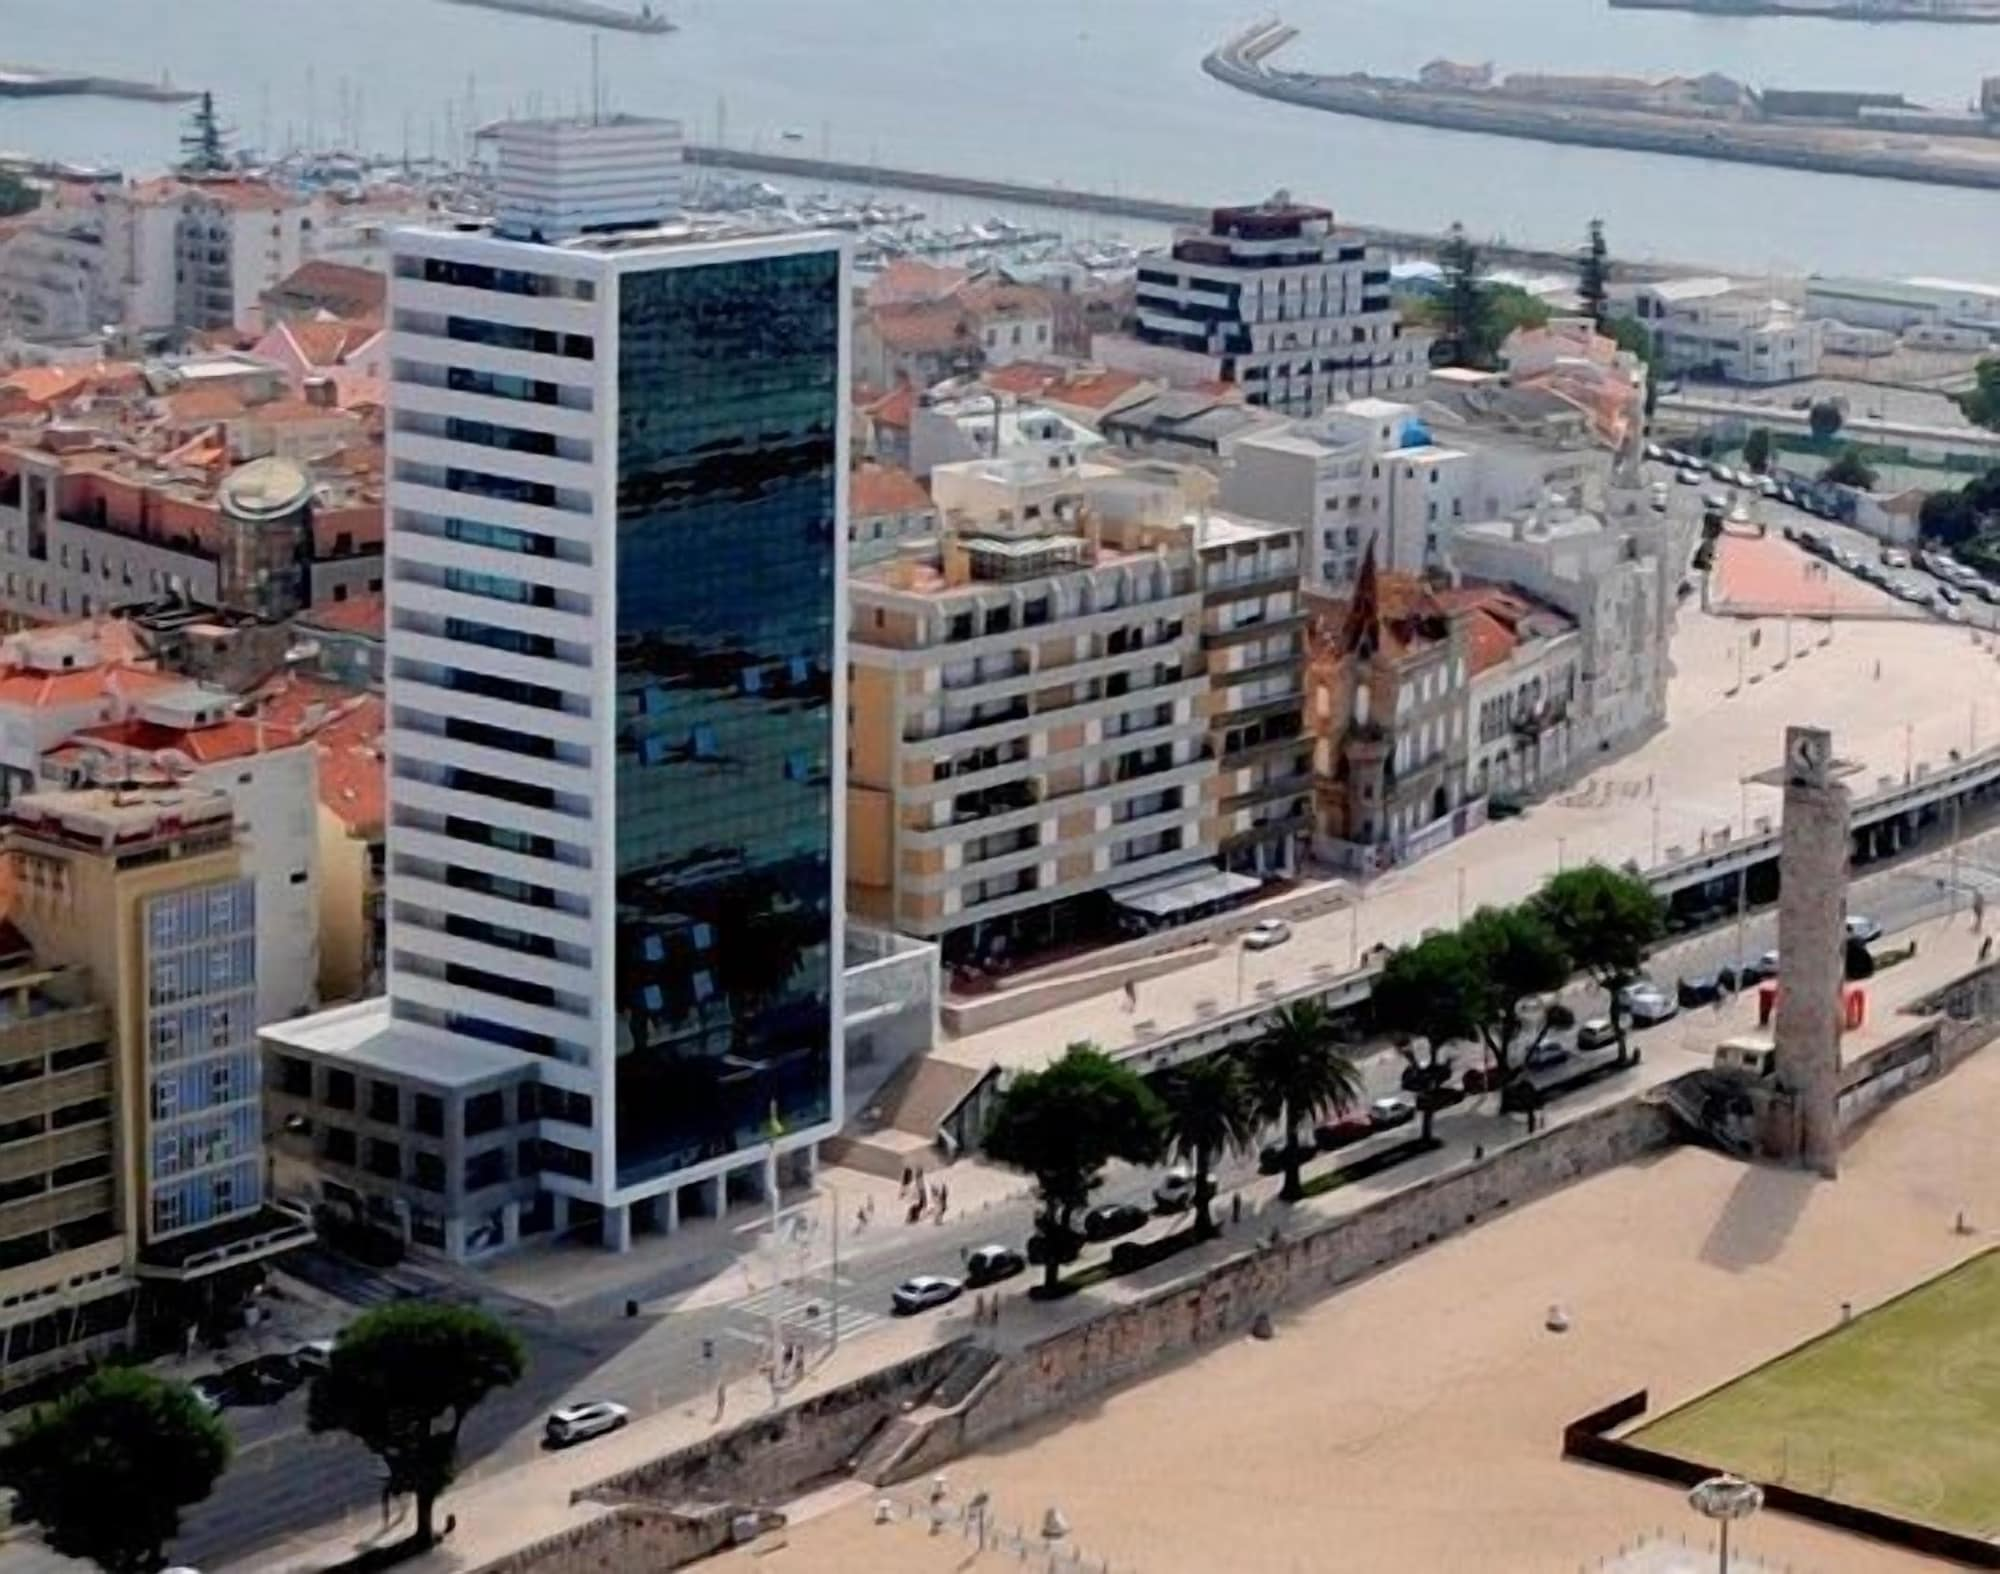 Sweet Atlantic Hotel & Spa, Figueira da Foz